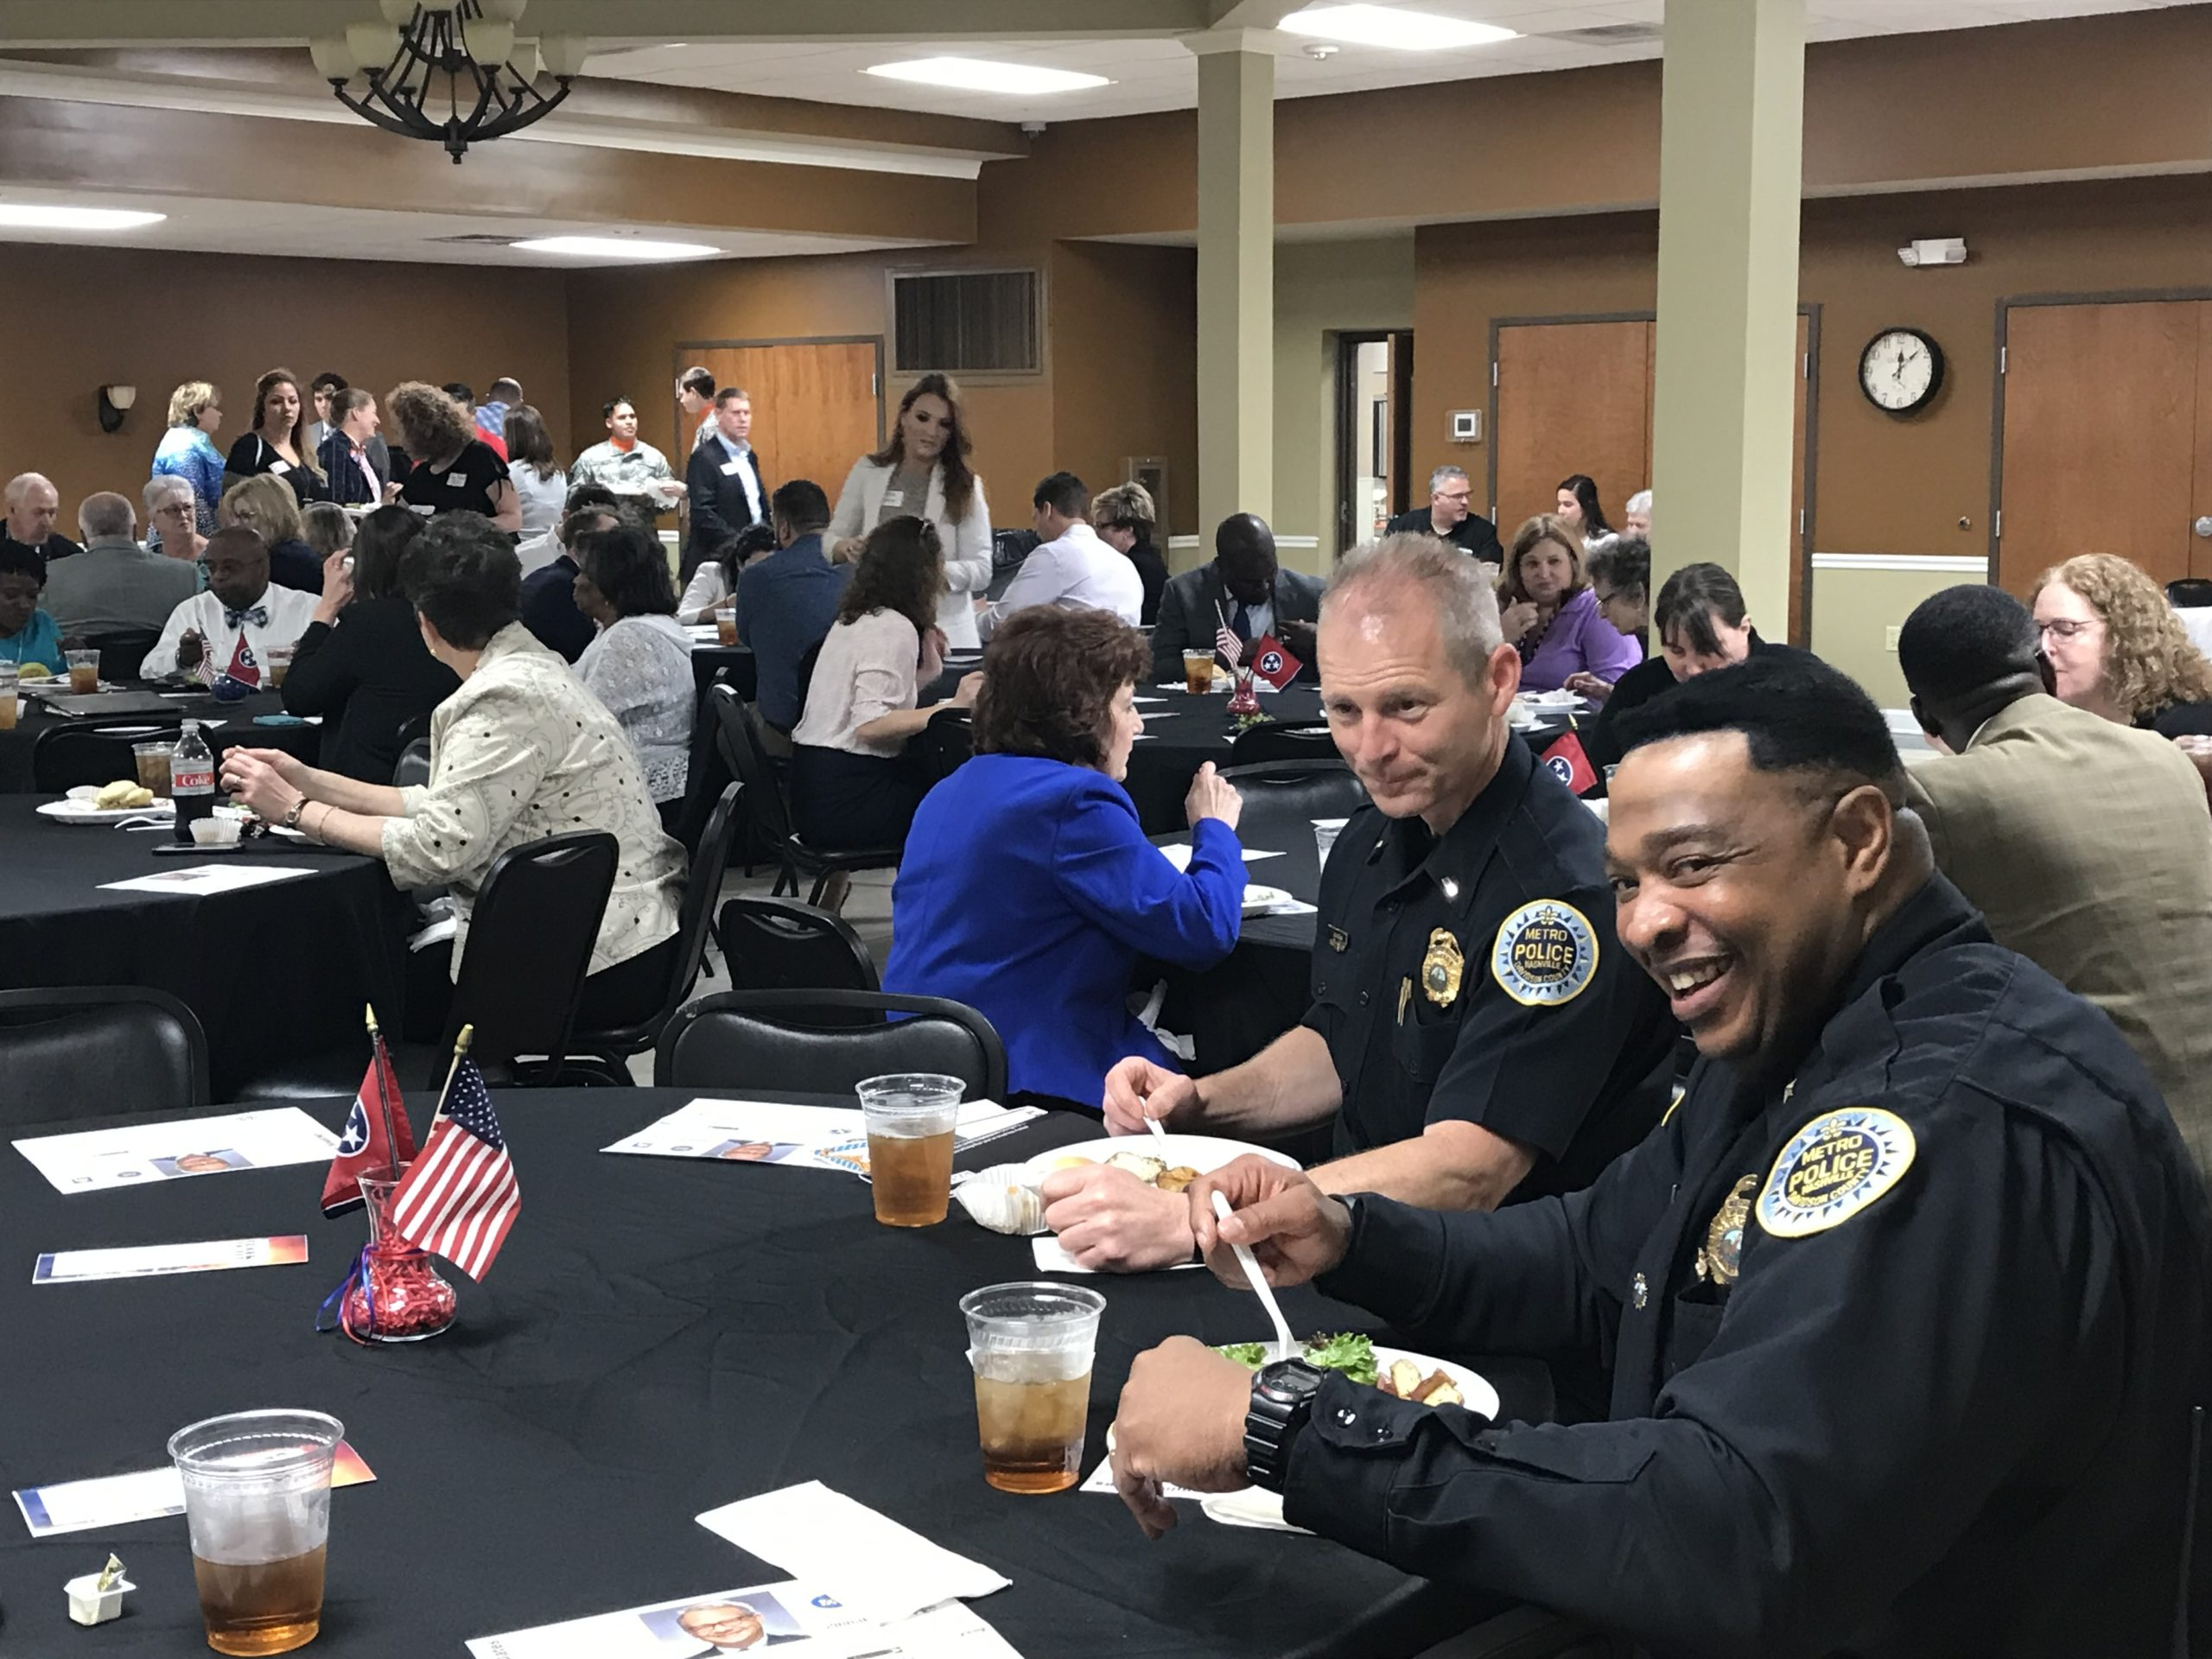 Several groupd sit at tables for the luncheon, including two members of local police enjoying a meal.